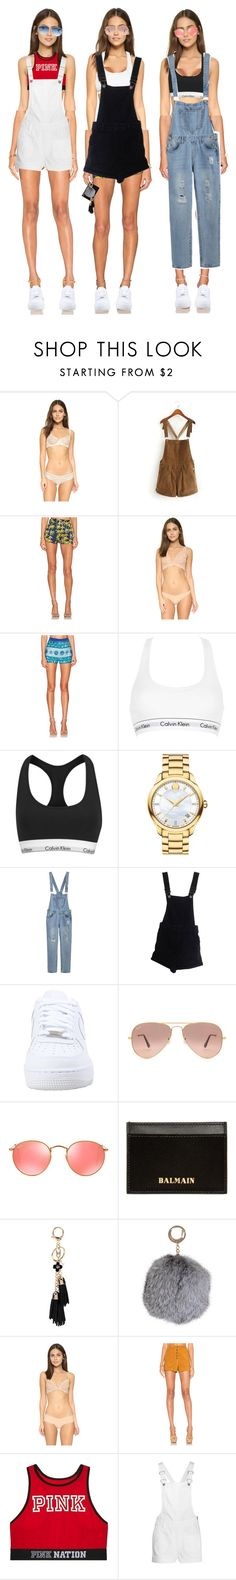 """Untitled #2006"" by makeupbylibby ❤ liked on Polyvore featuring Eberjey, Sam&Lavi, Commando, KAS New York, Calvin Klein Underwear, Calvin Klein, Movado, ASOS, NIKE and Ray-Ban"